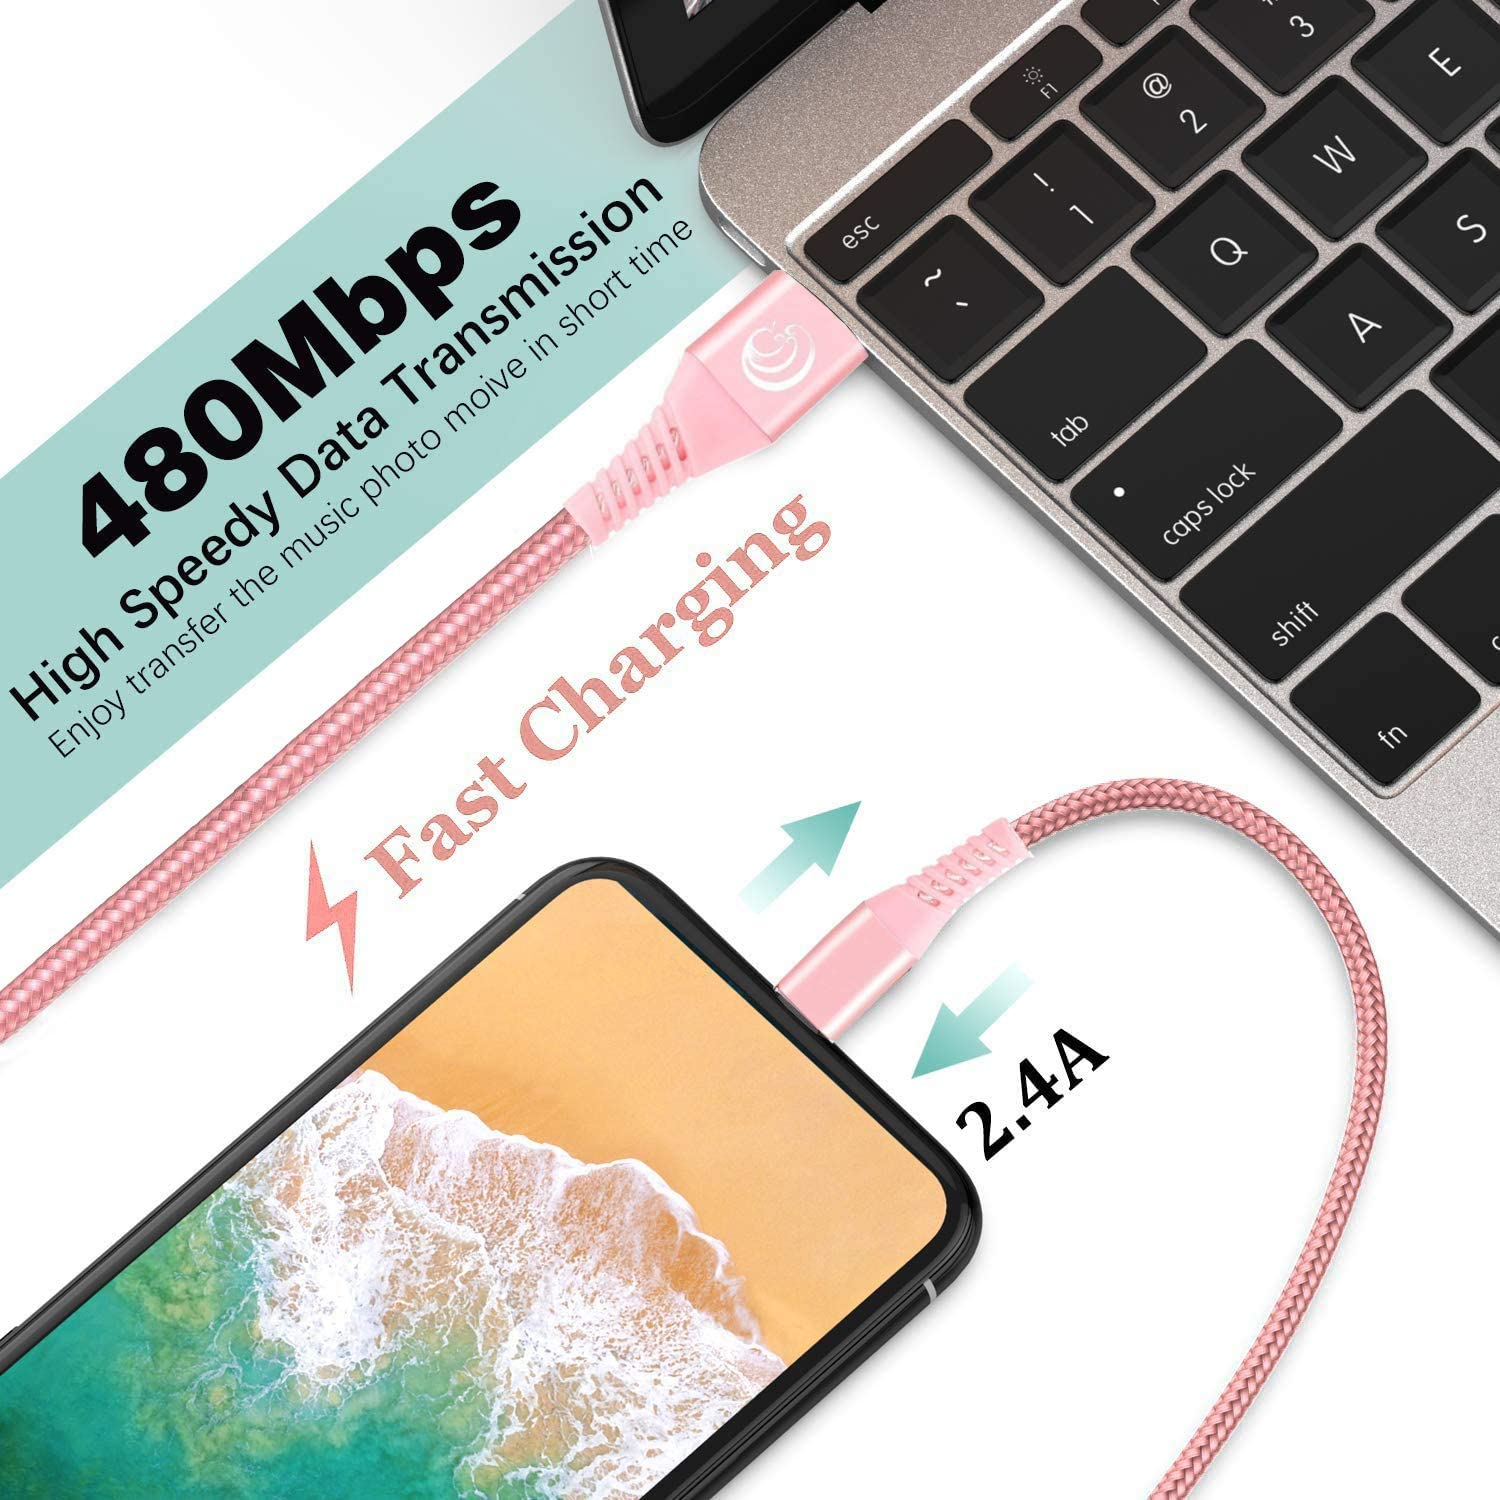 Aioneus Mfi Certified Lightning Cable Fast Charging iPhone Charger Nylon Braided Phone Charger Cord 6ft, 2Pack Compatible with iPhone 12 Pro Max 11 Pro Xr Xs Max 10 8 Plus 7 6 6s 5c,SE 2020,iPad